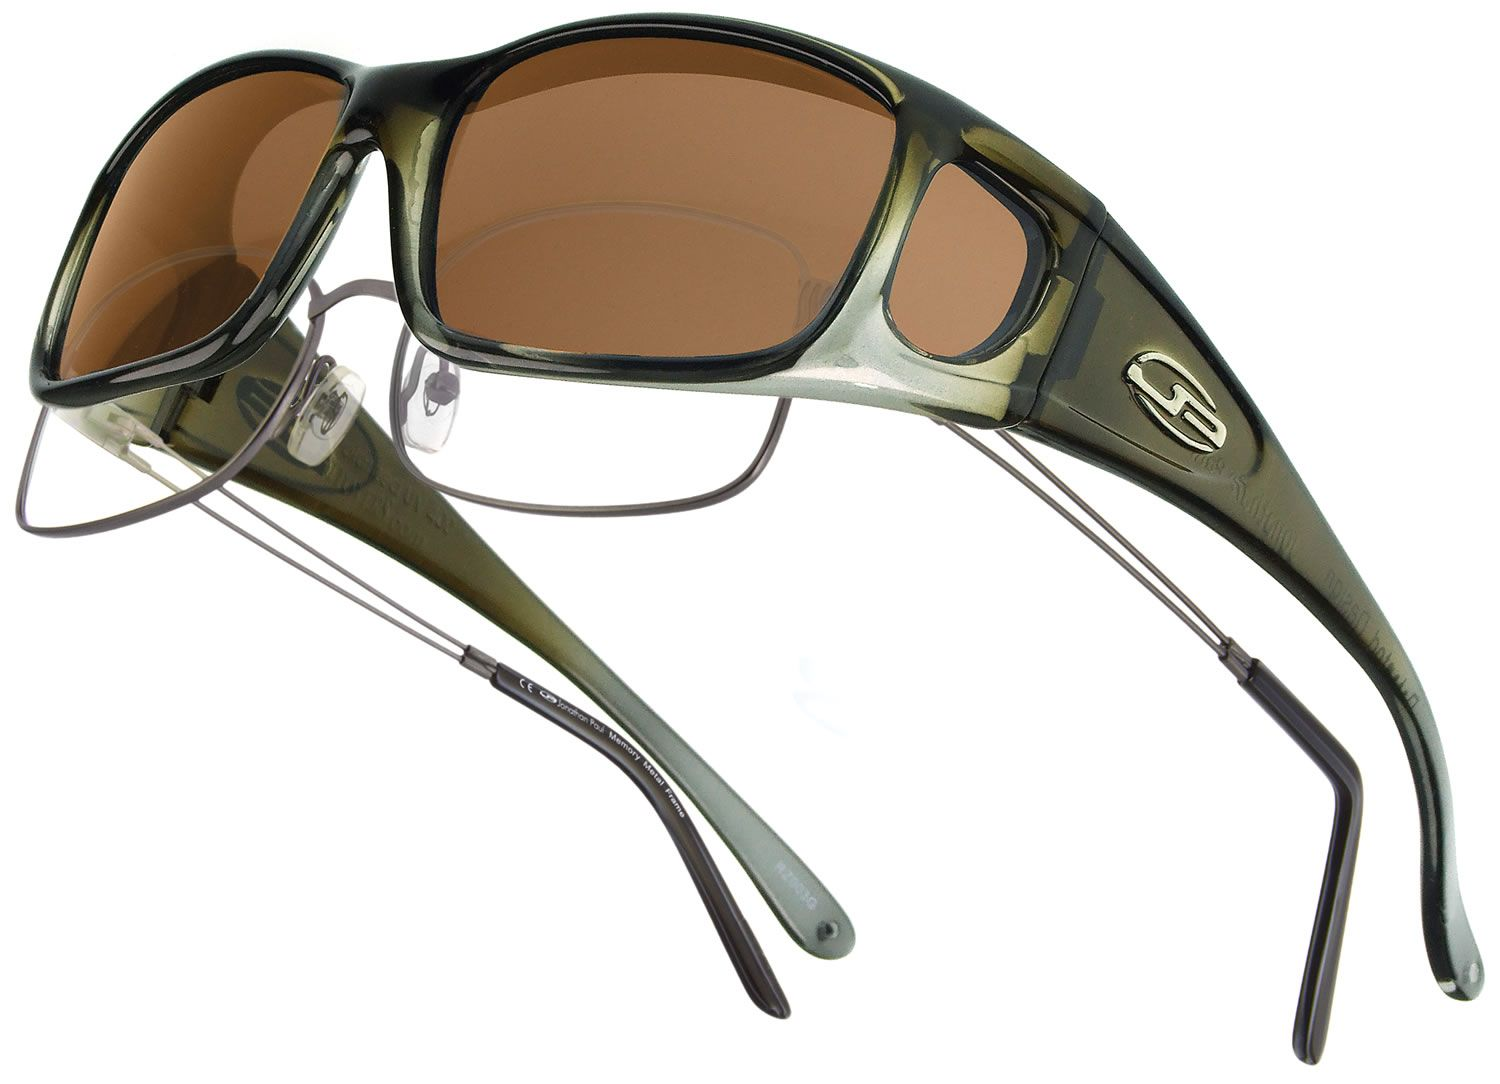 64ef48dda0cc Razor Olive Charcoal Fitovers by Jonathan Paul - high quality TR90  hand-painted frames and durable polycarbonate lenses.